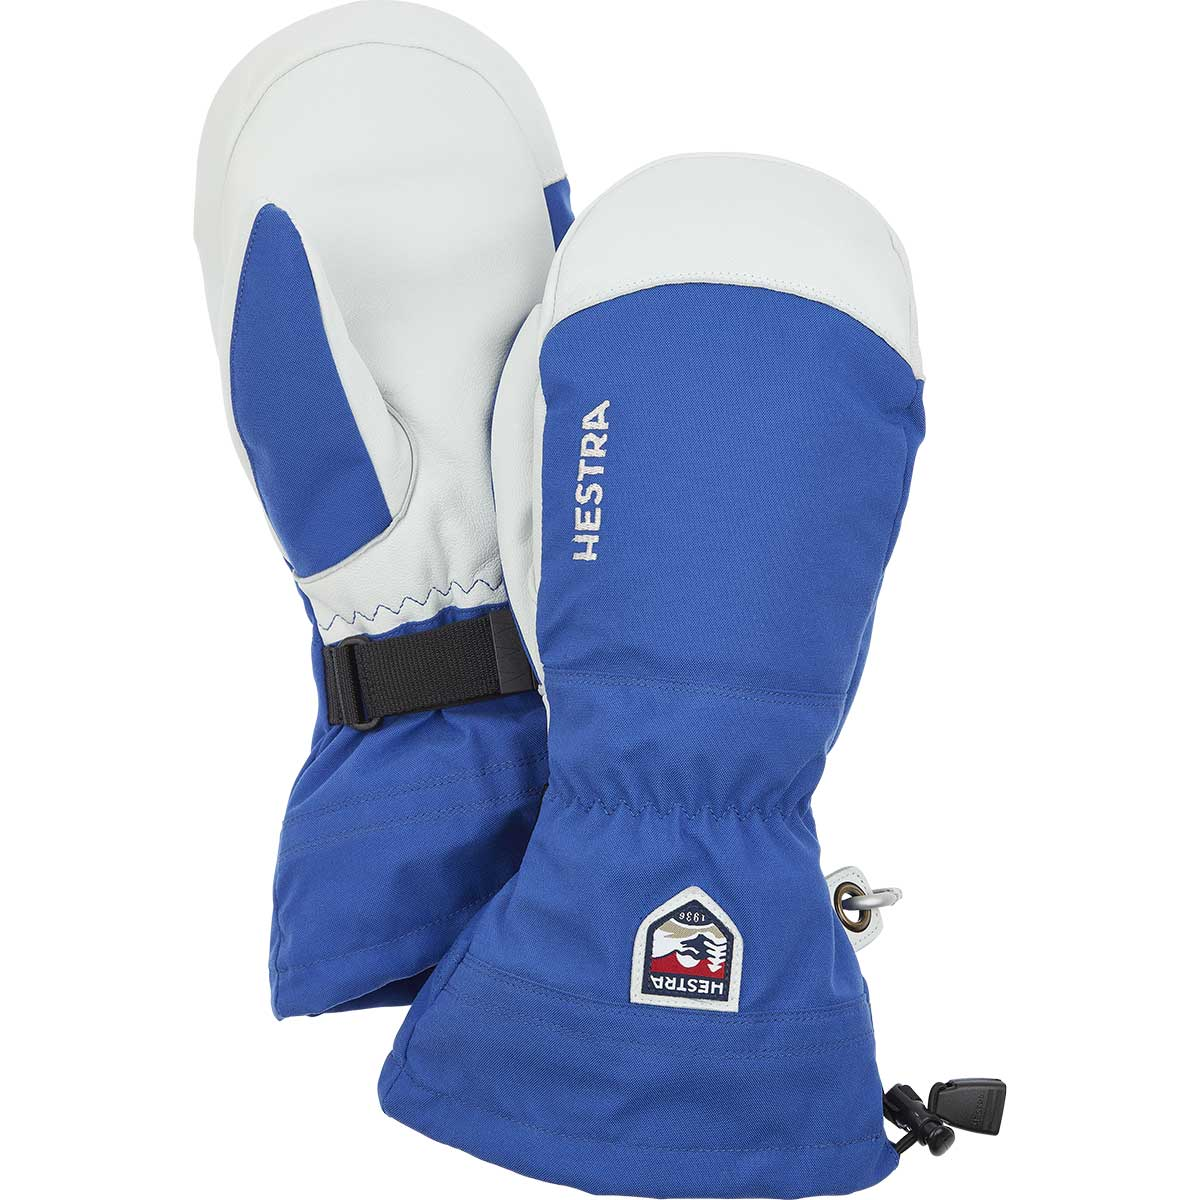 Hestra Army Leather Heli Ski Mitt in royal blue